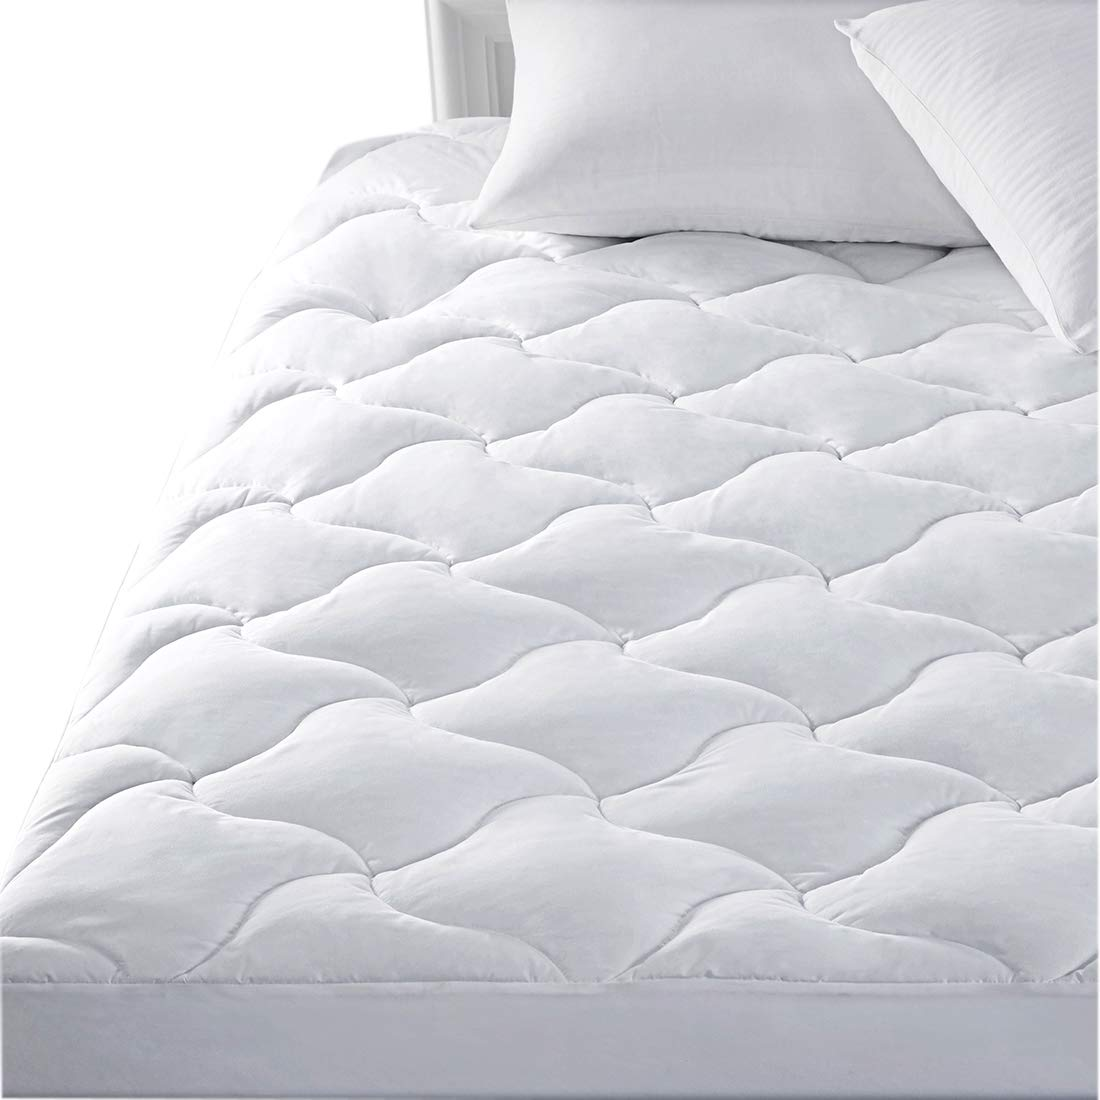 SWTMERRY Mattress Pads Cover Queen Size Hypoallergenic Quilted Fitted with deep Pocket Cooling and Breathable for Hotel, White